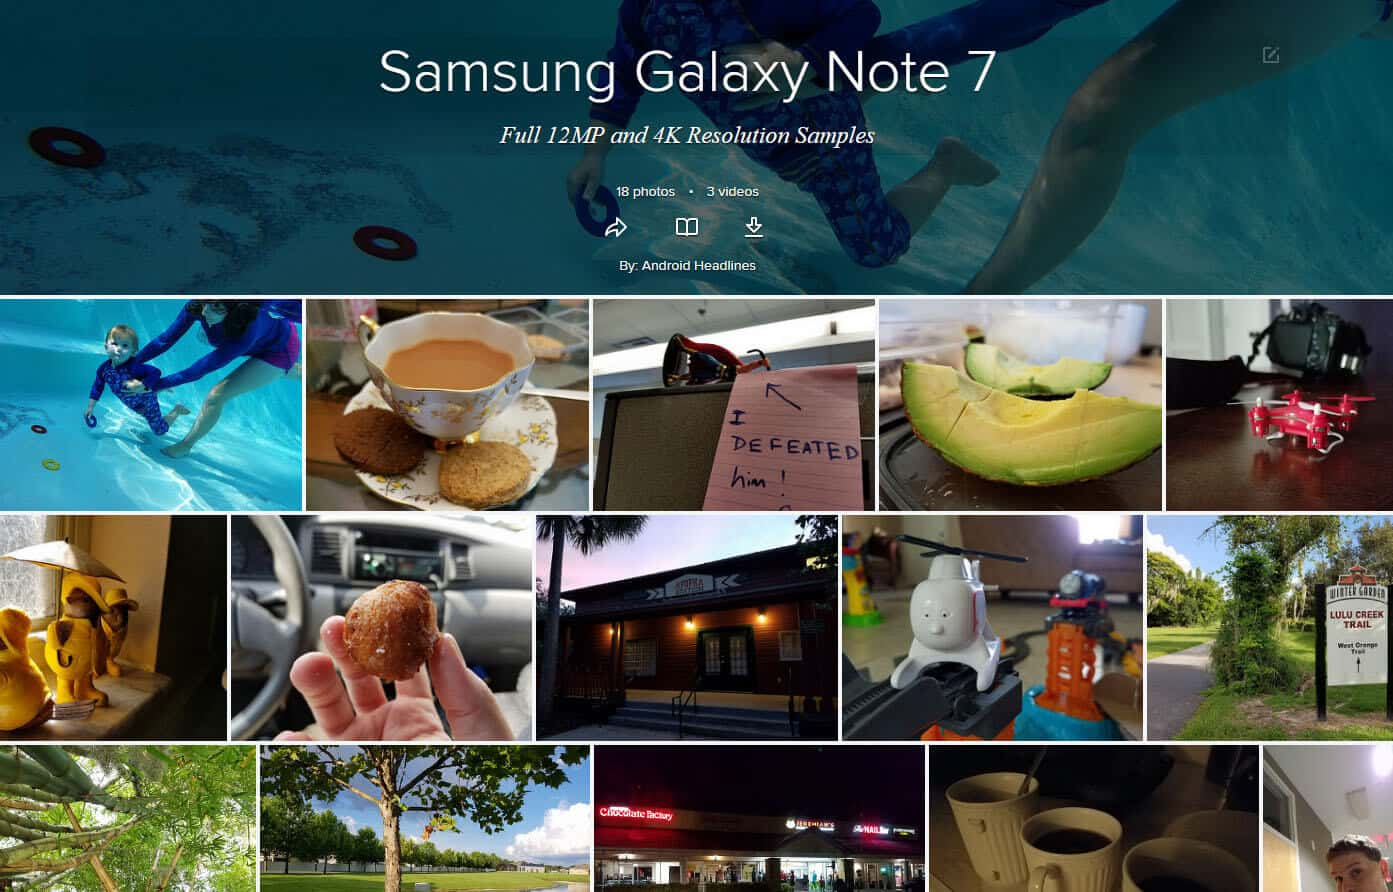 Samsung-Galaxy-Note-7-AH-NS-flickr